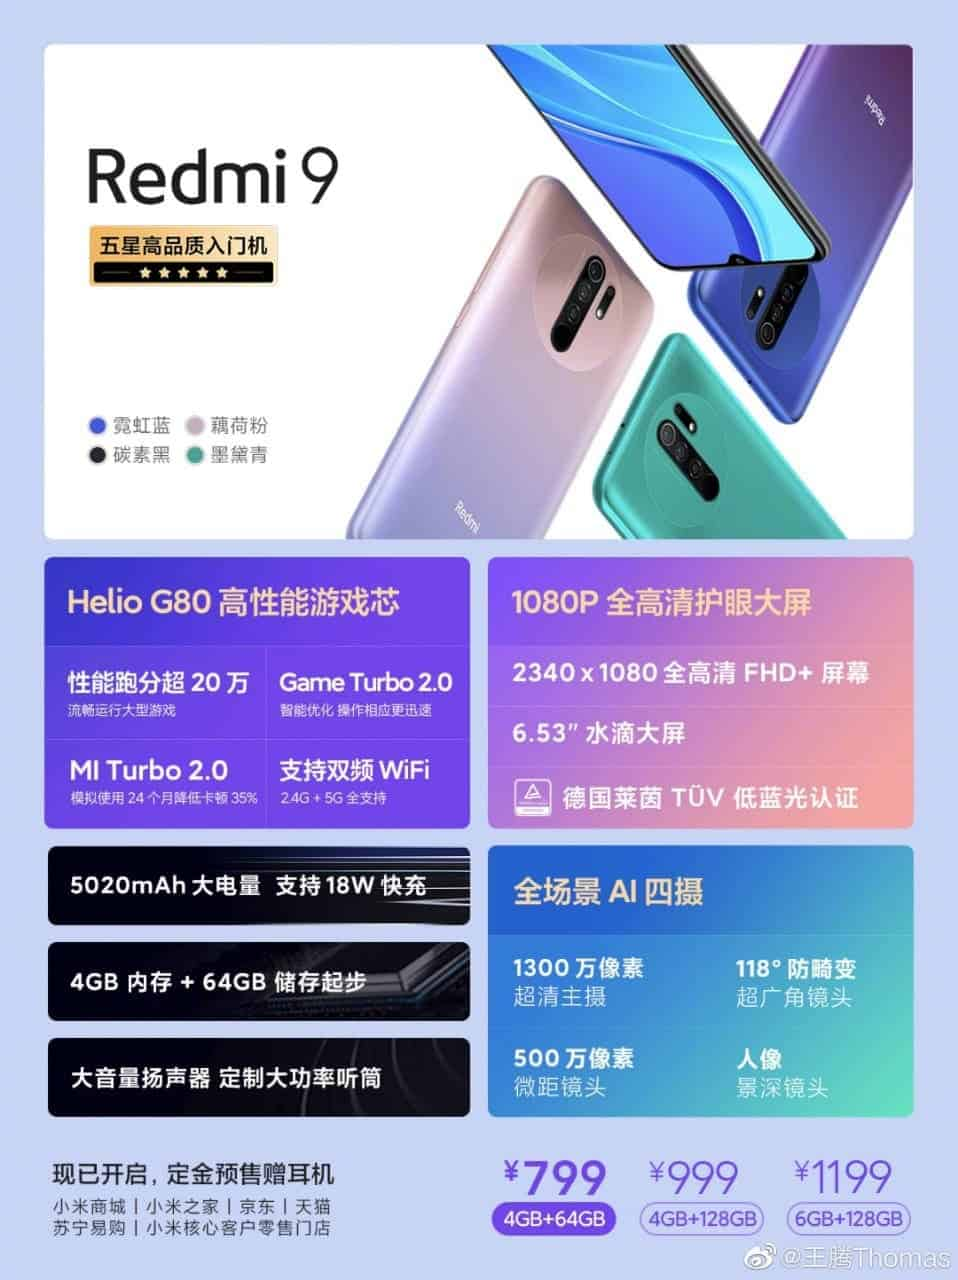 Redmi 9 Is Now Available At Pre-Order In China With An Astonishing Price Tag